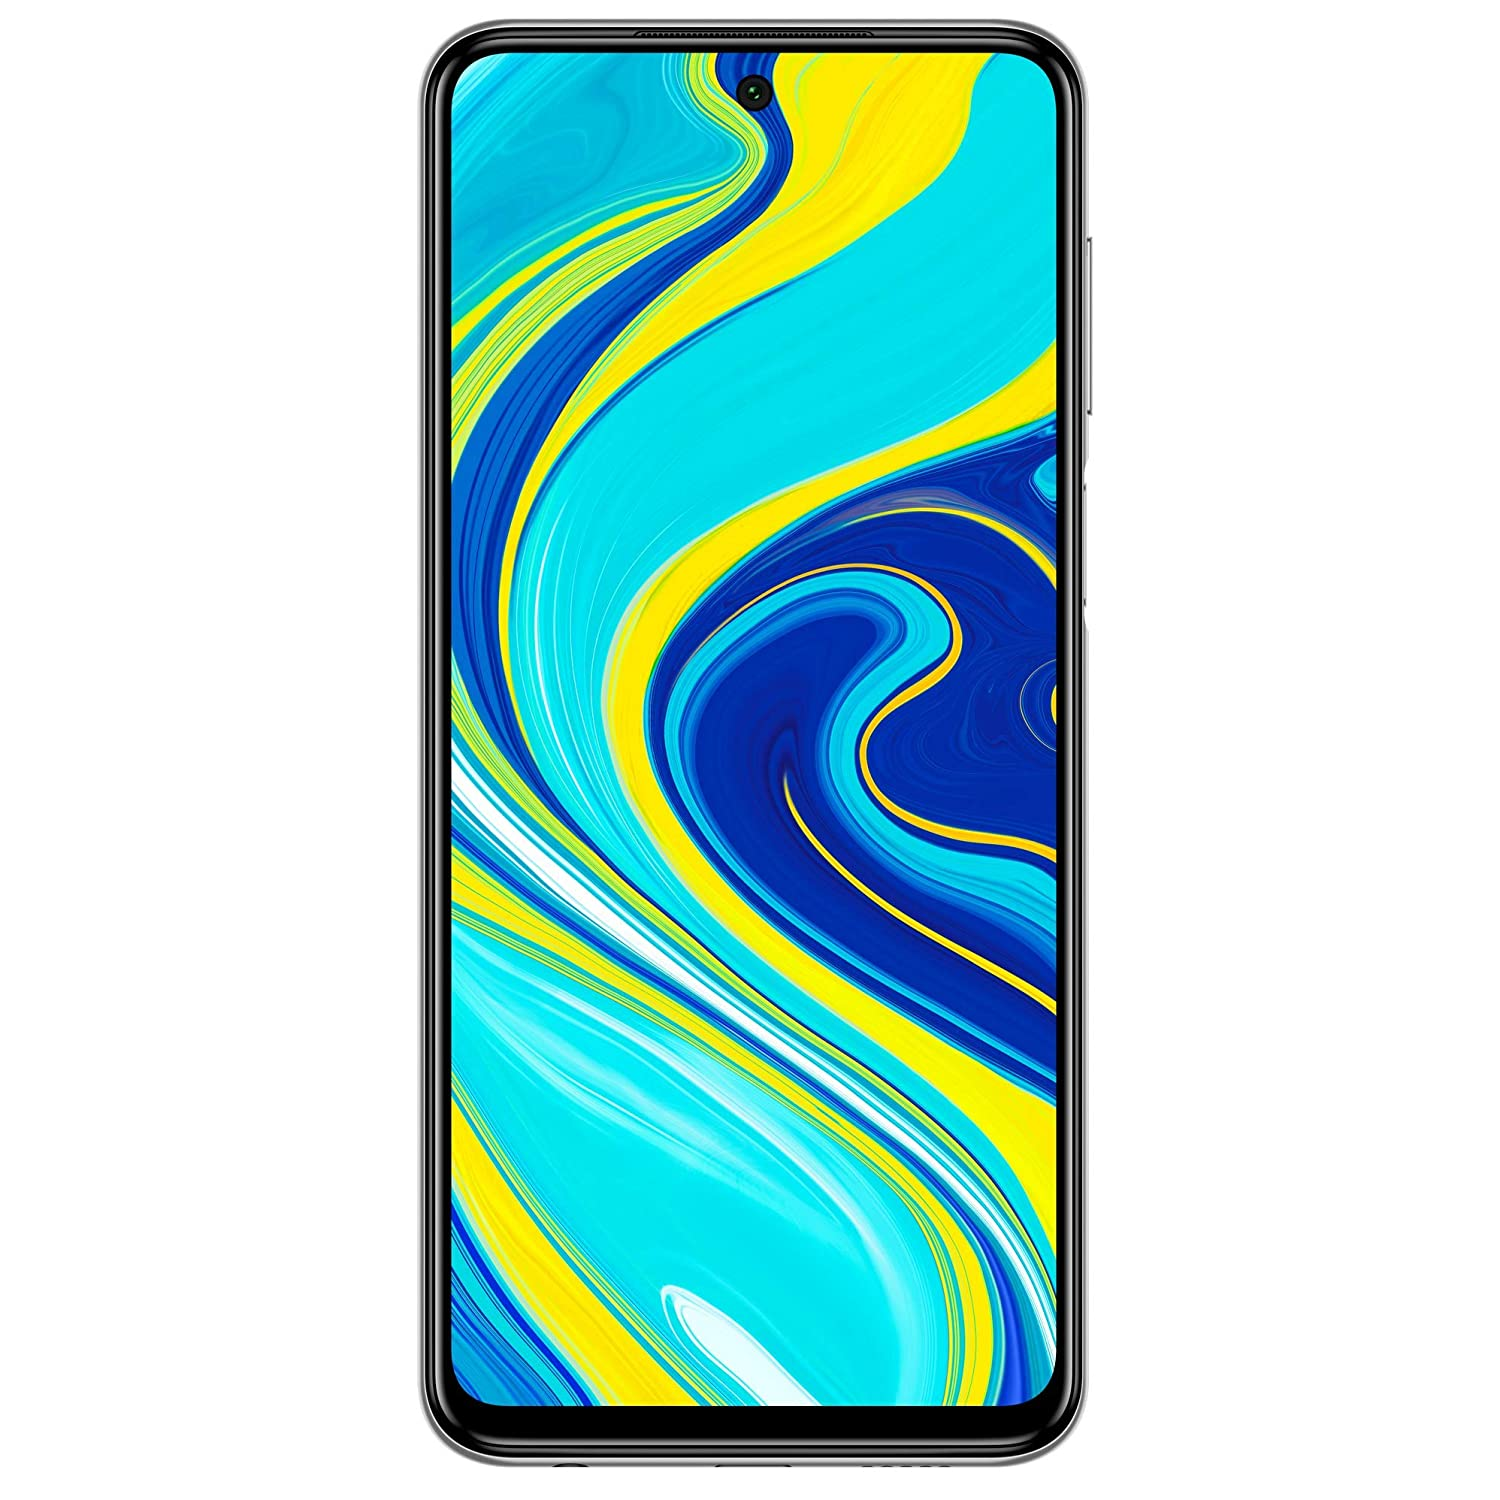 Redmi Note 9 Pro (Glacier White, 4GB RAM, 64GB Storage) - Latest 8nm Snapdragon 720G & Alexa Hands-Free